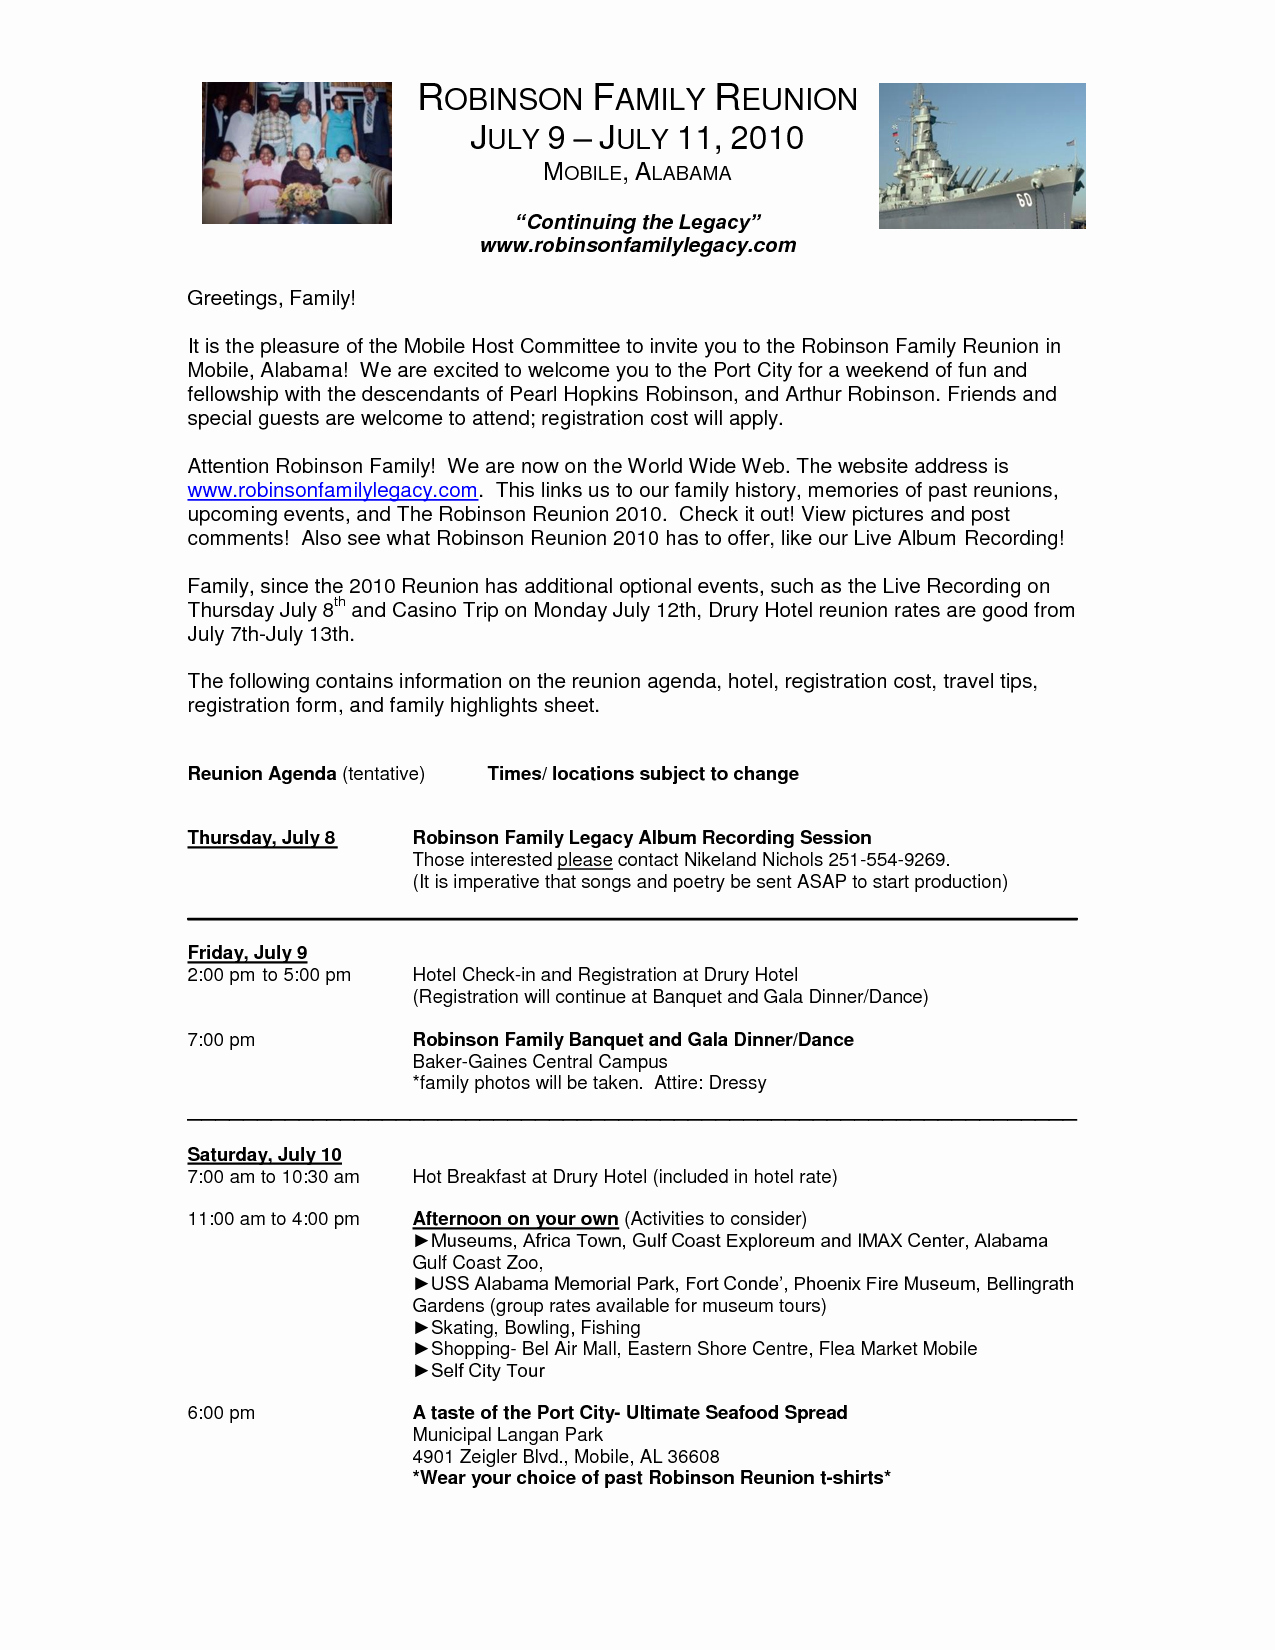 Family Reunion Letter Template Inspirational Family Reunion Letter Templates Portablegasgrillweber